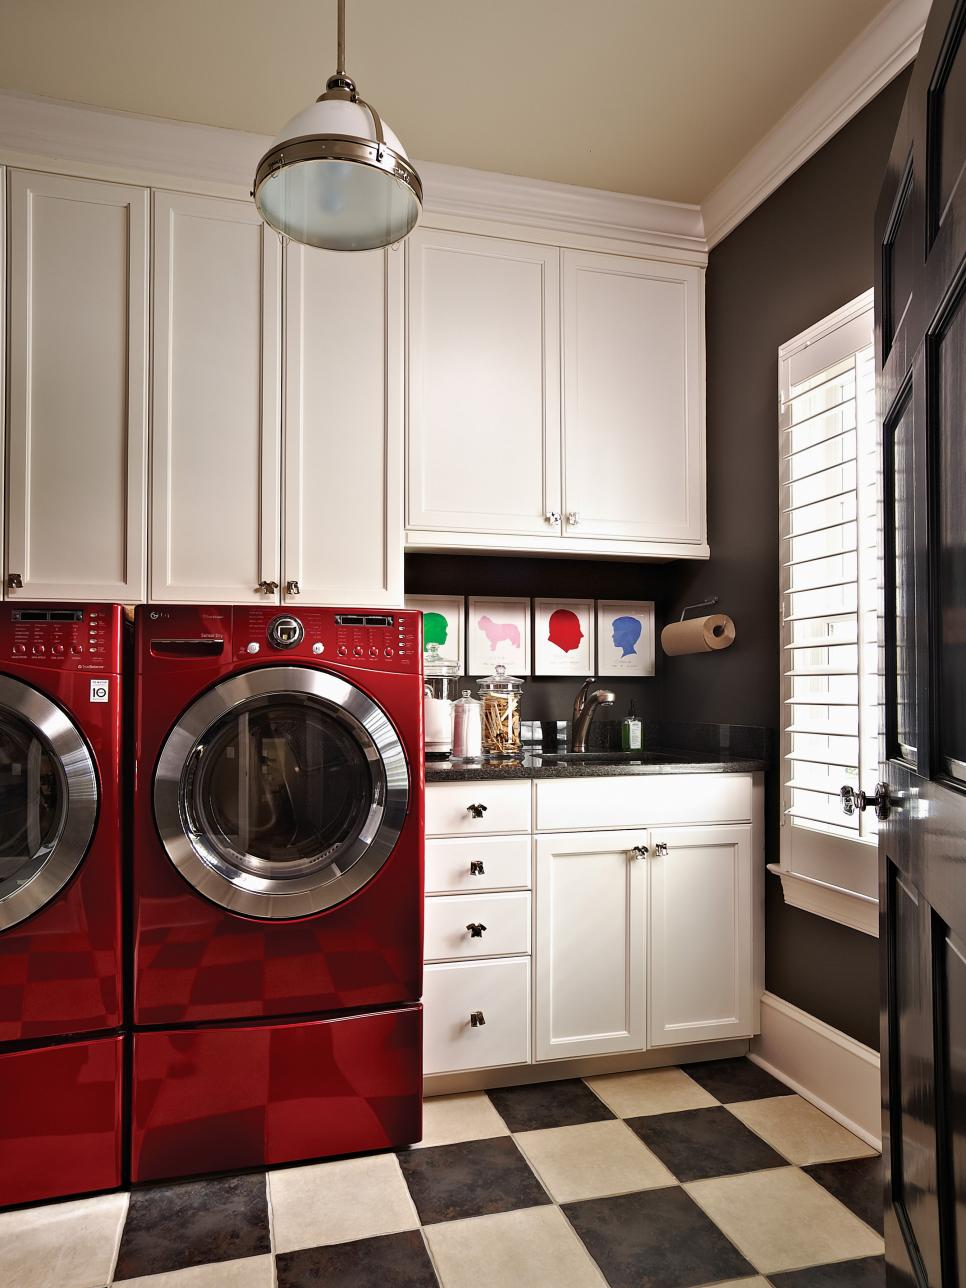 laundry room paint ideas10 Chic Laundry Room Decorating Ideas  HGTV